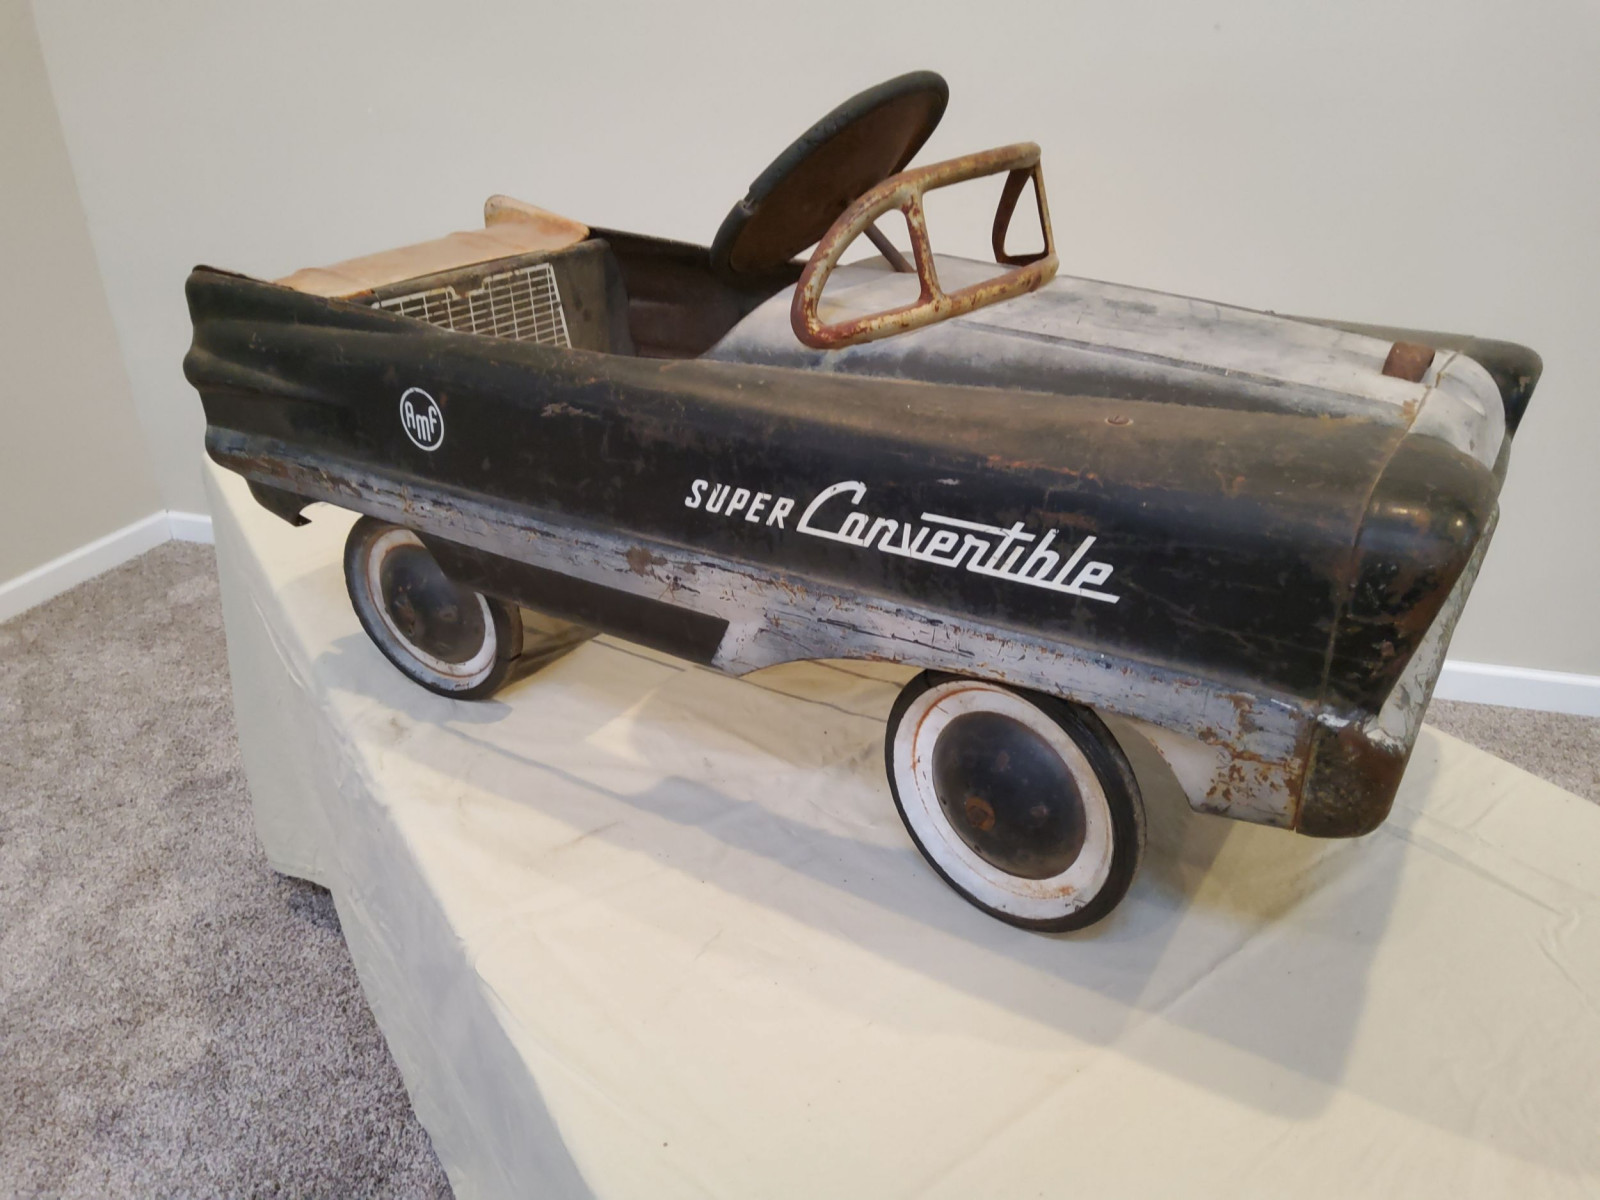 1954 AMF Super Convertible Pedal Car - Image 8